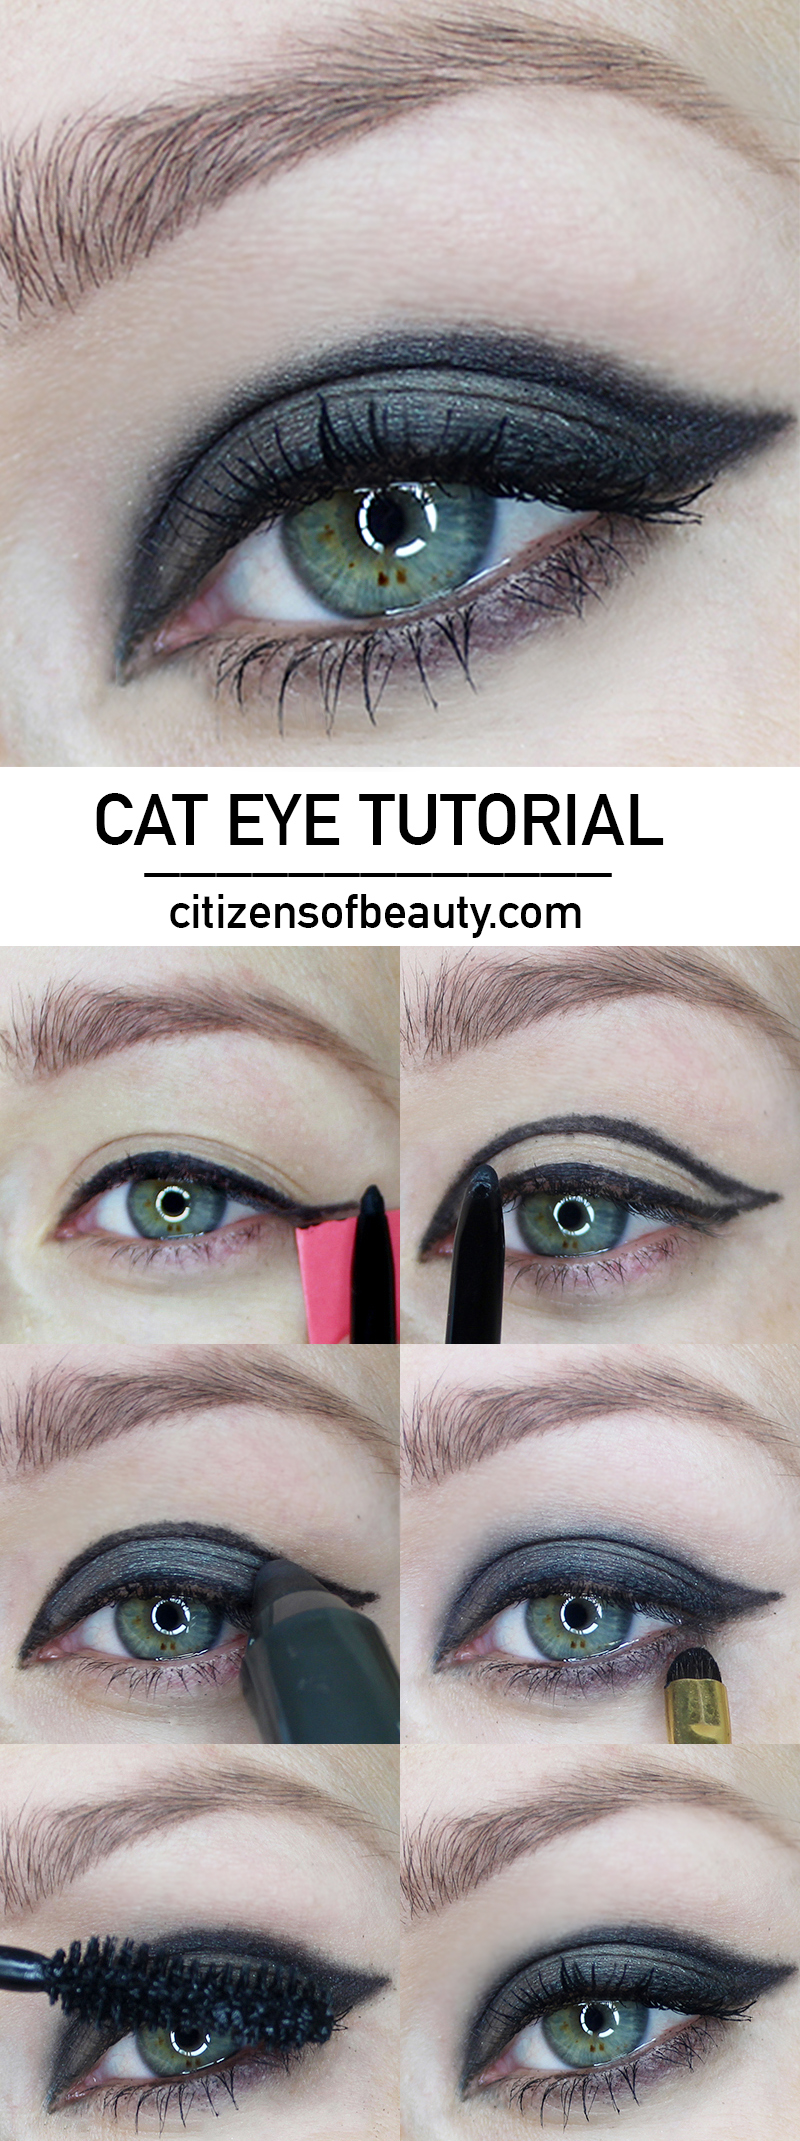 HOW TO: cat eye makeup tutorial